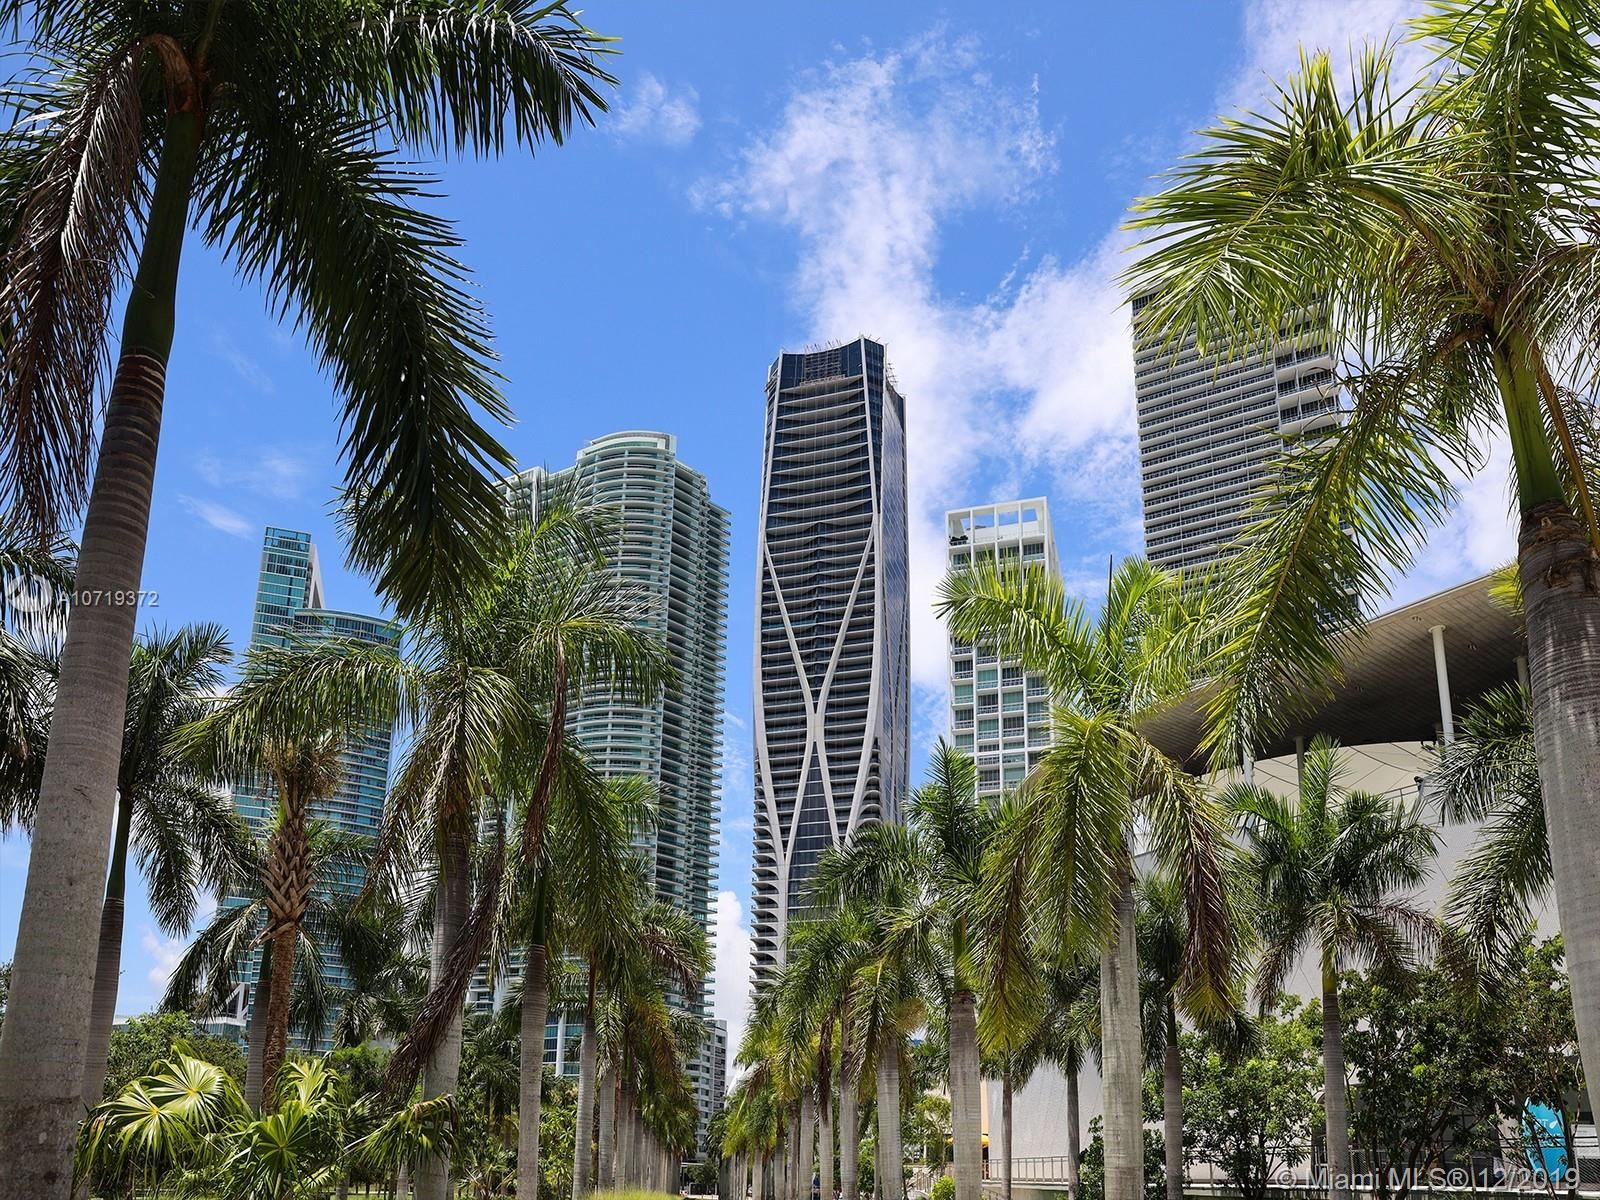 Photo 3 of Listing MLS a10719372 in 1000 Biscayne Blvd #5901 Miami FL 33132